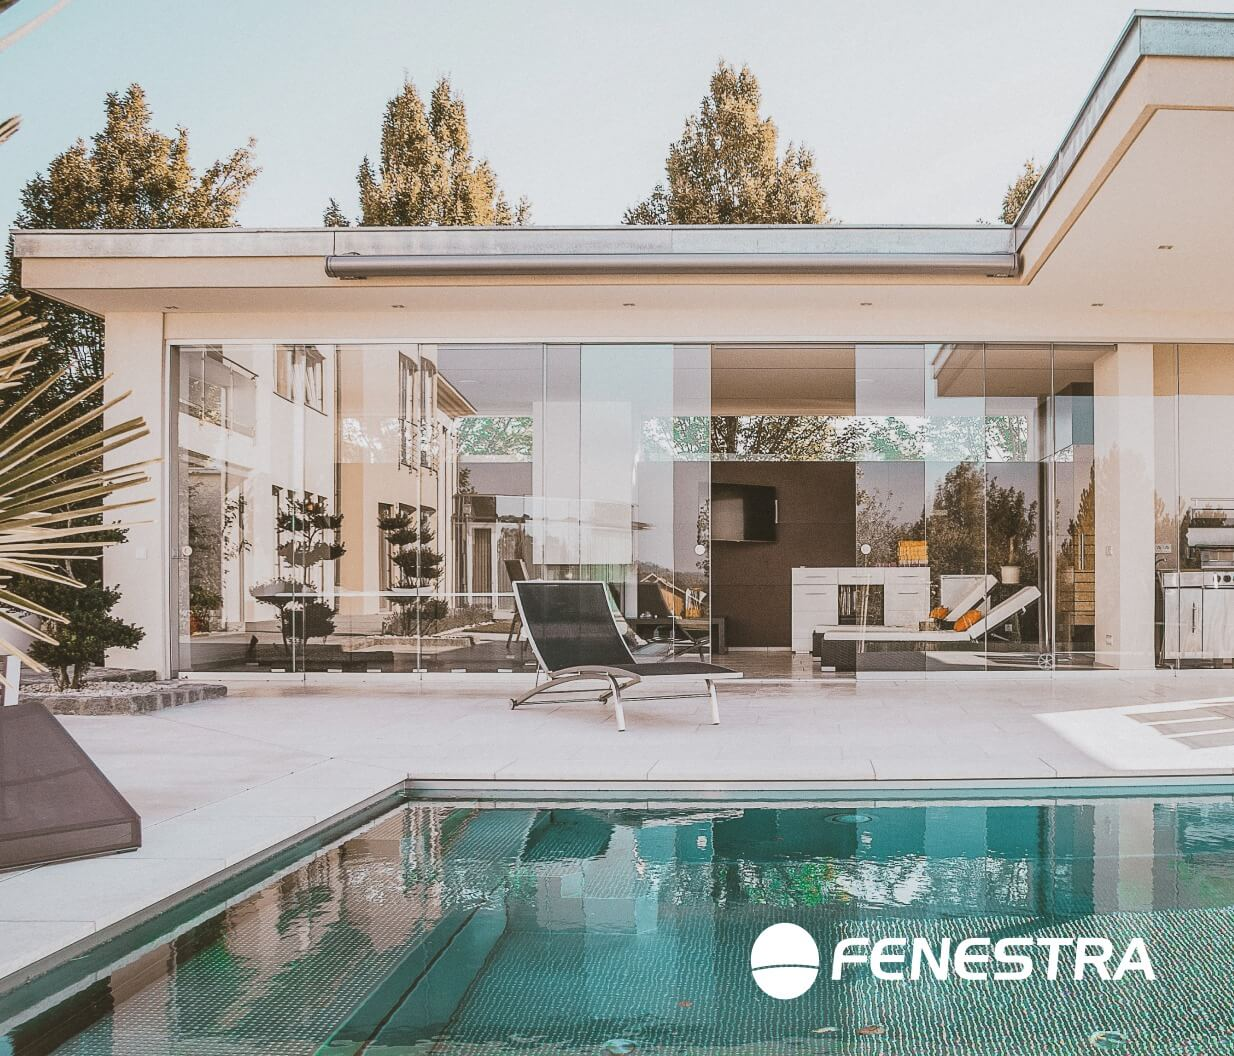 House with a pool and frameless windows with Fenestra logo.